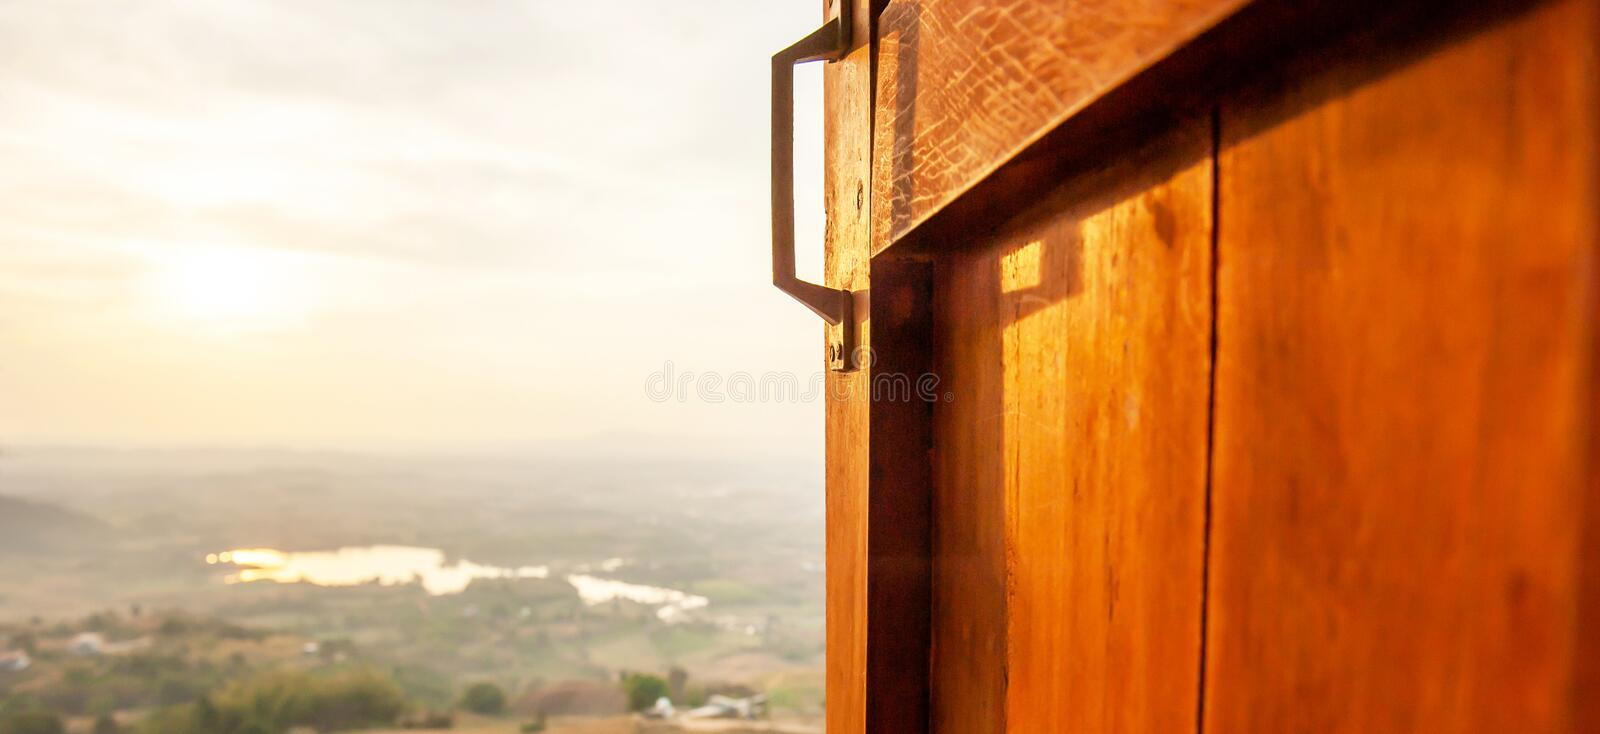 Open window view onto a tranquil morning with the sun shines on a lake in background. Open window view onto a tranquil morning with the sun shines on a lake stock image